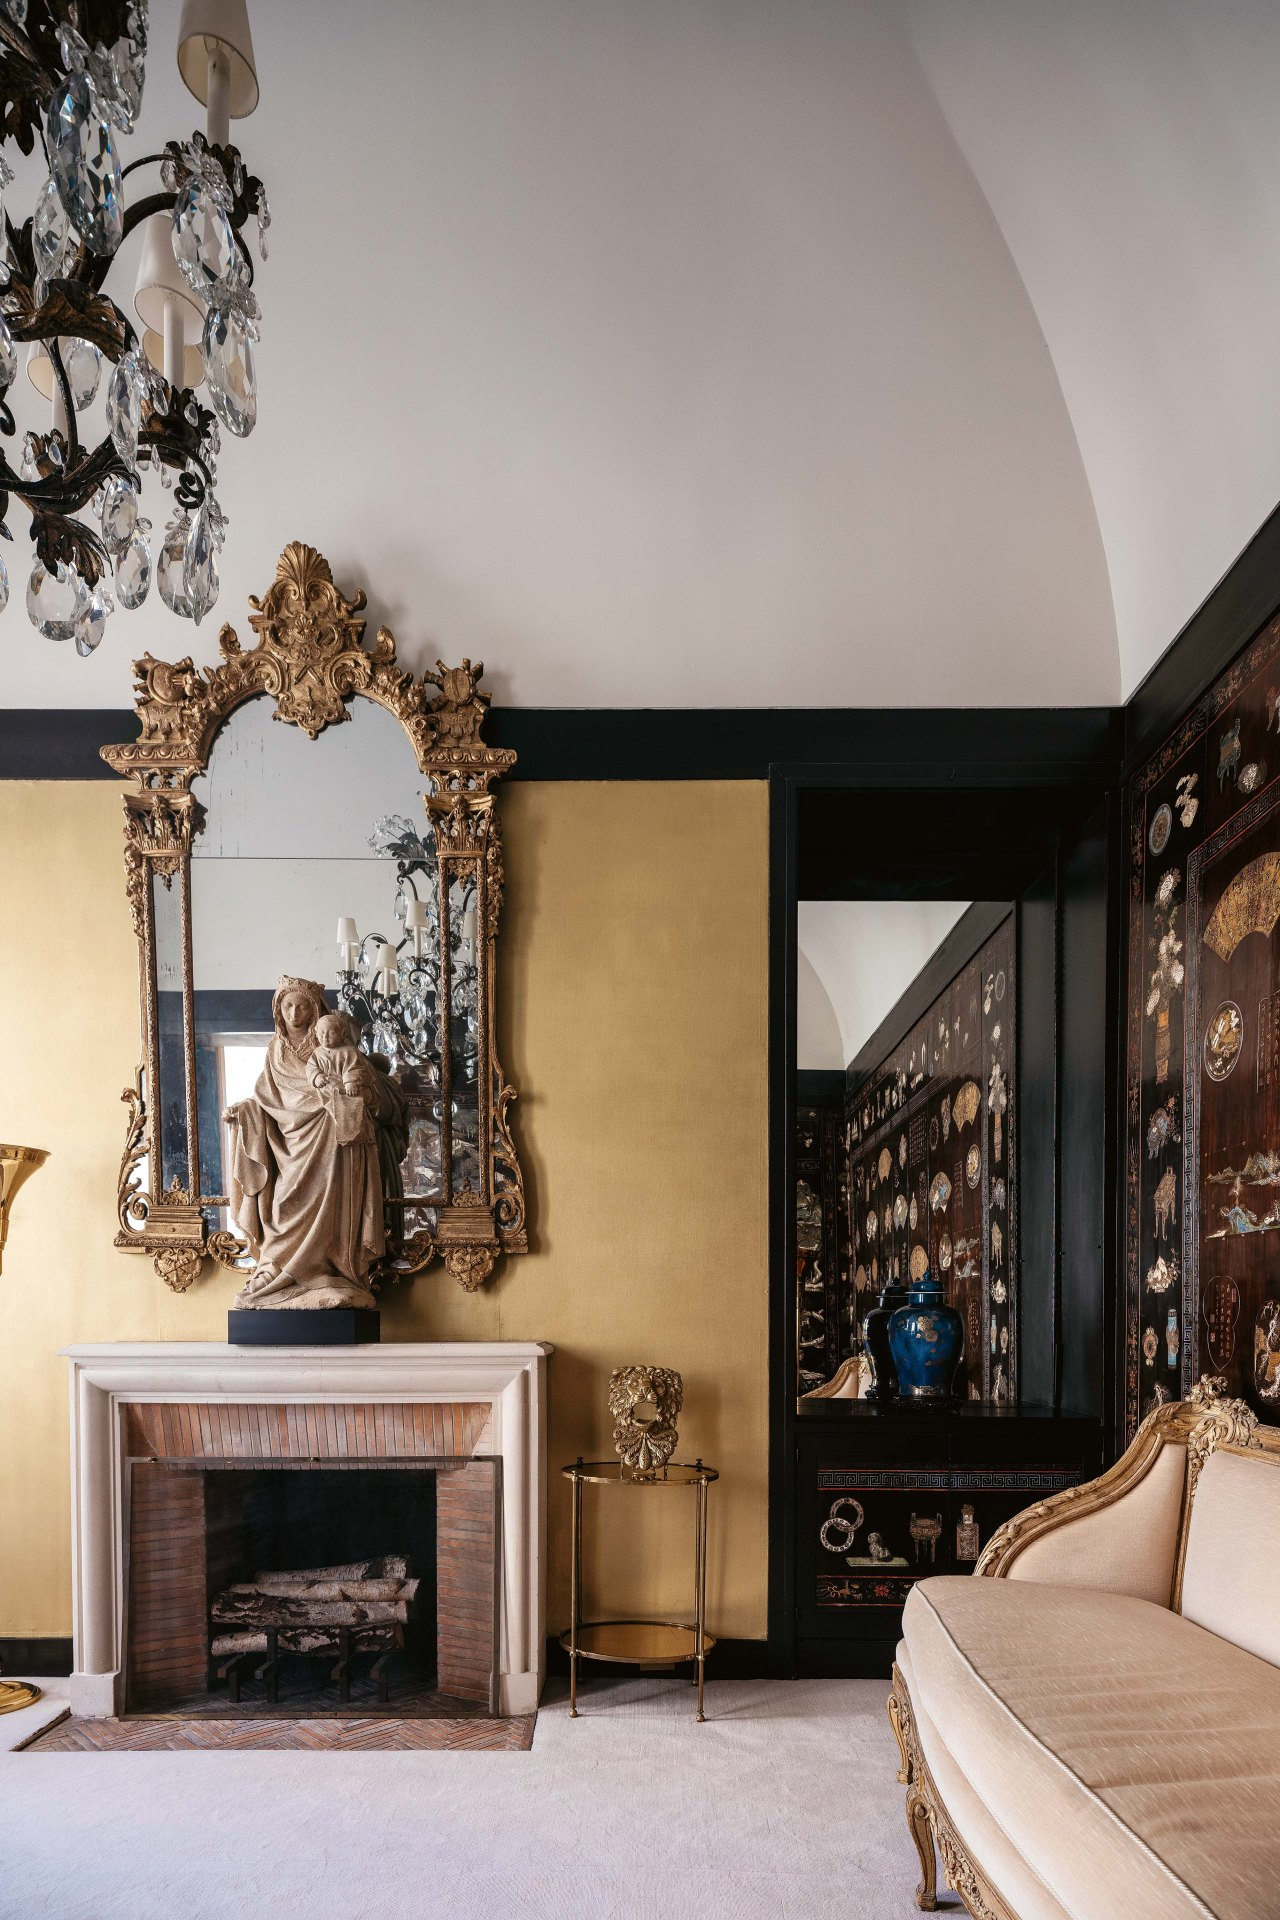 House tour: inside Coco Chanel's historic and art-filled Paris apartment